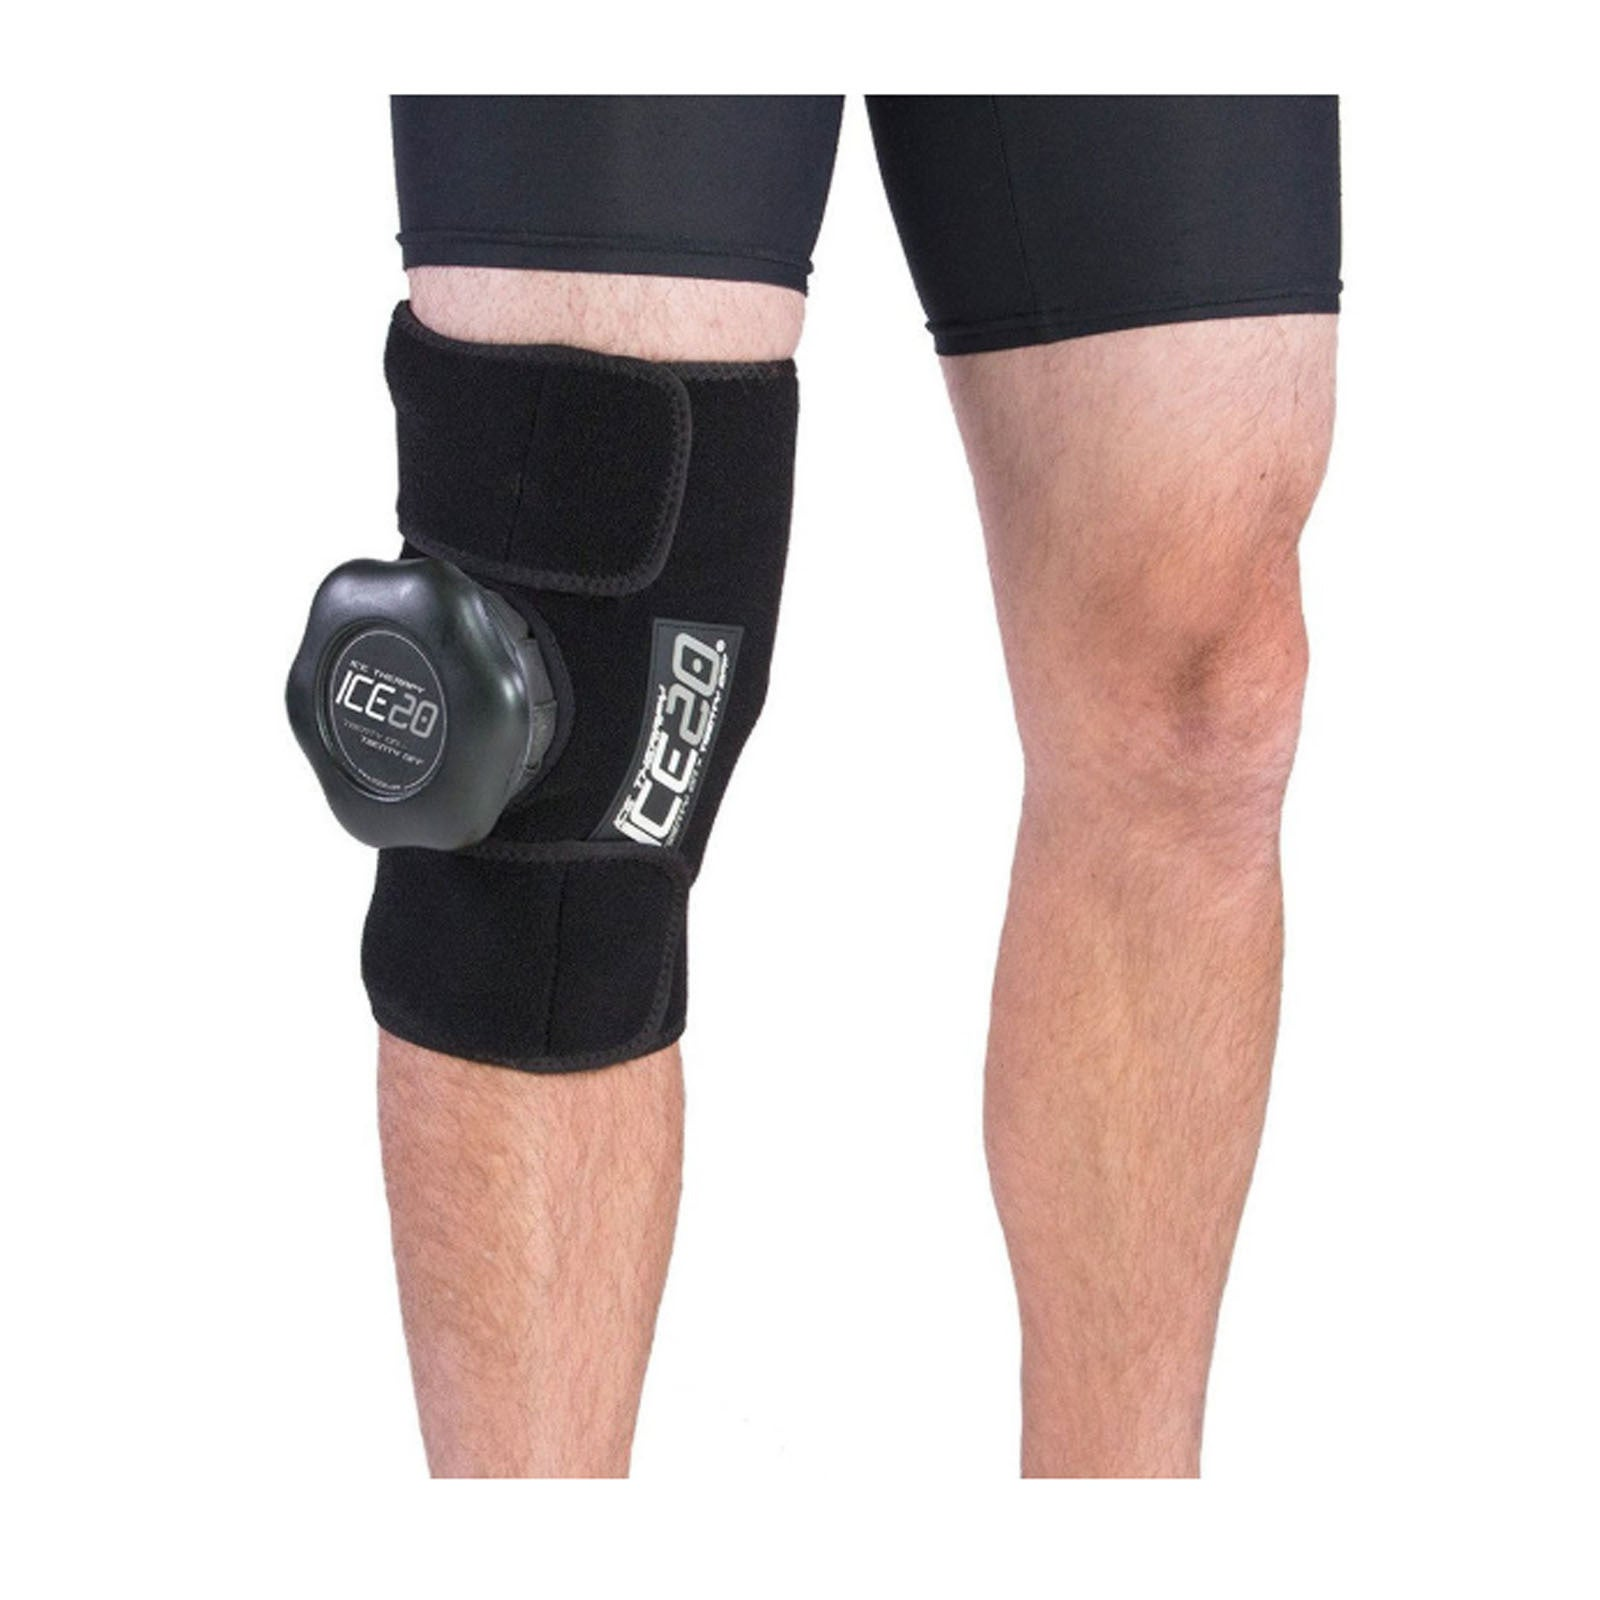 ICE 20 Large Single Knee Strap Compression Therapy Wrap Cold Pain Relief